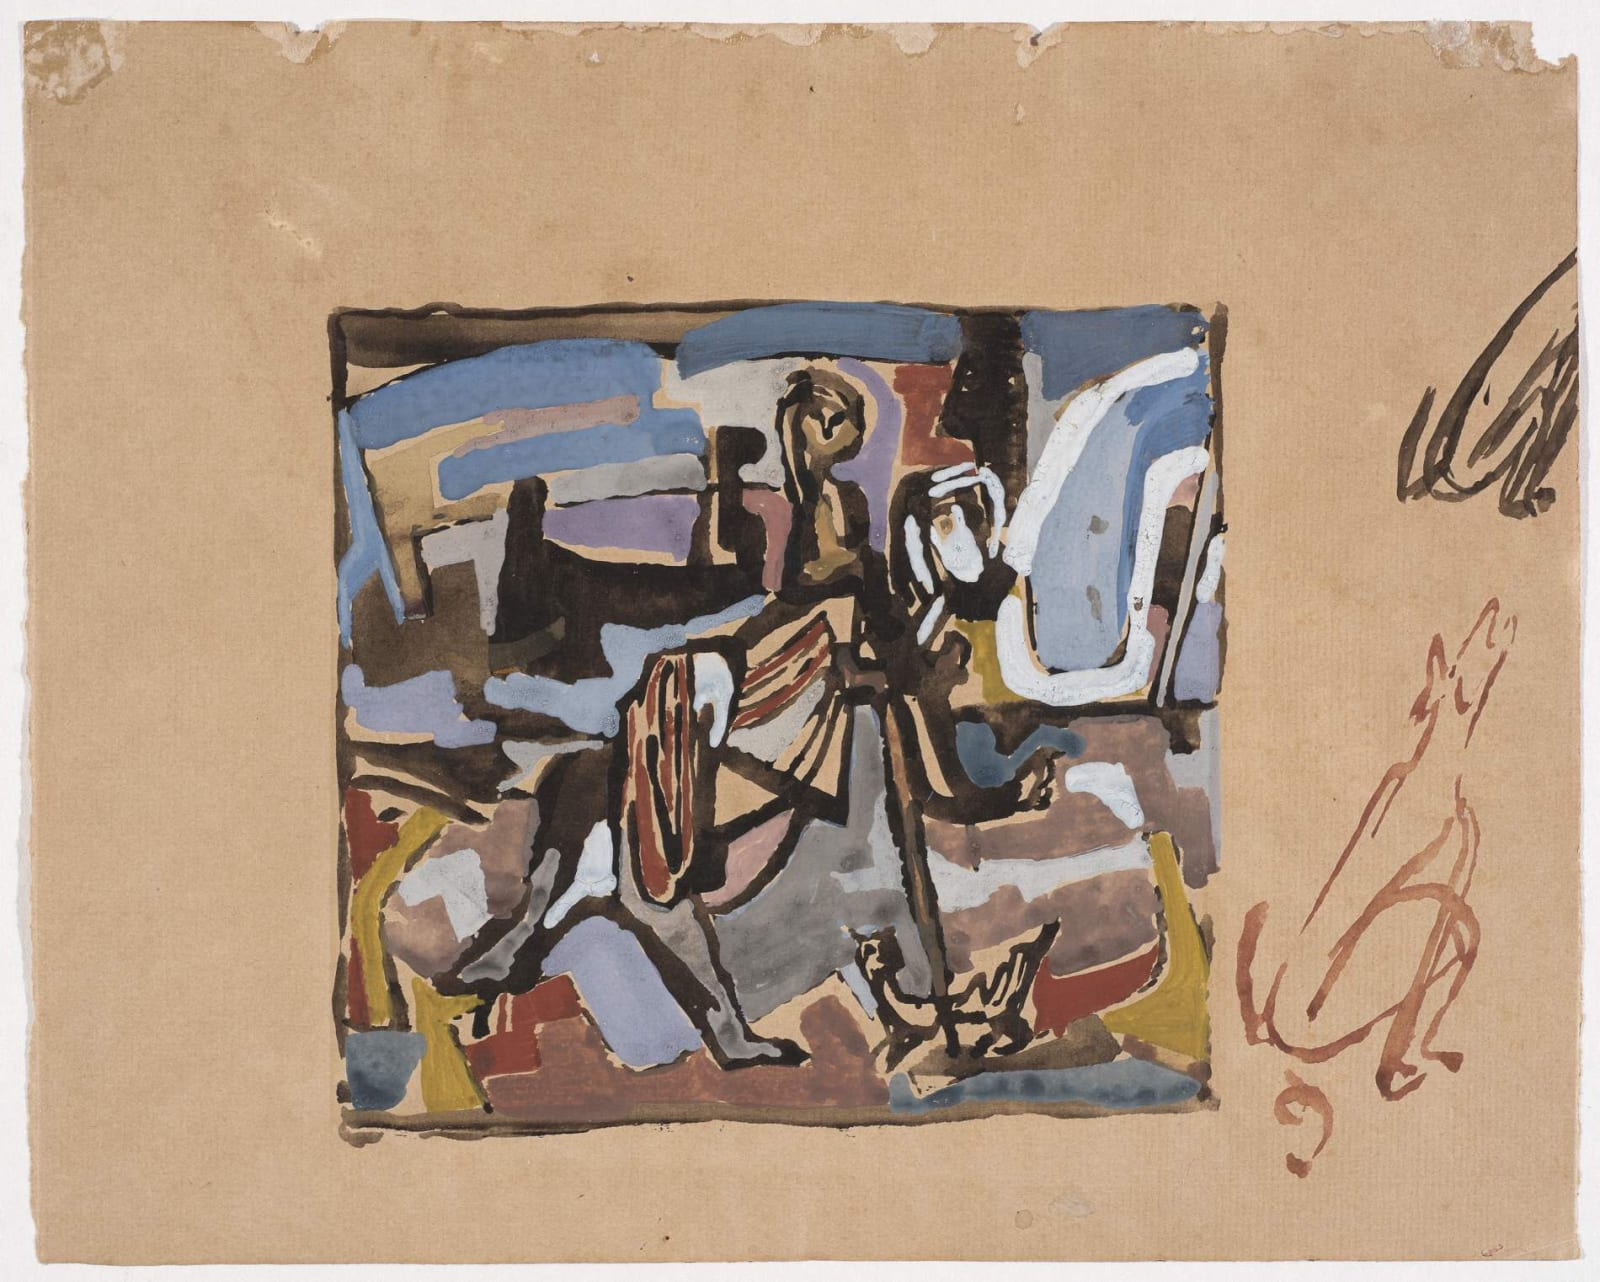 Jankel Adler (1895-1949) Untitled (with marginalia) n.d. Gouache on paper 26.5 x 21 cm Charles Bezalel Aukin Collection To see and discover more about this artist click here